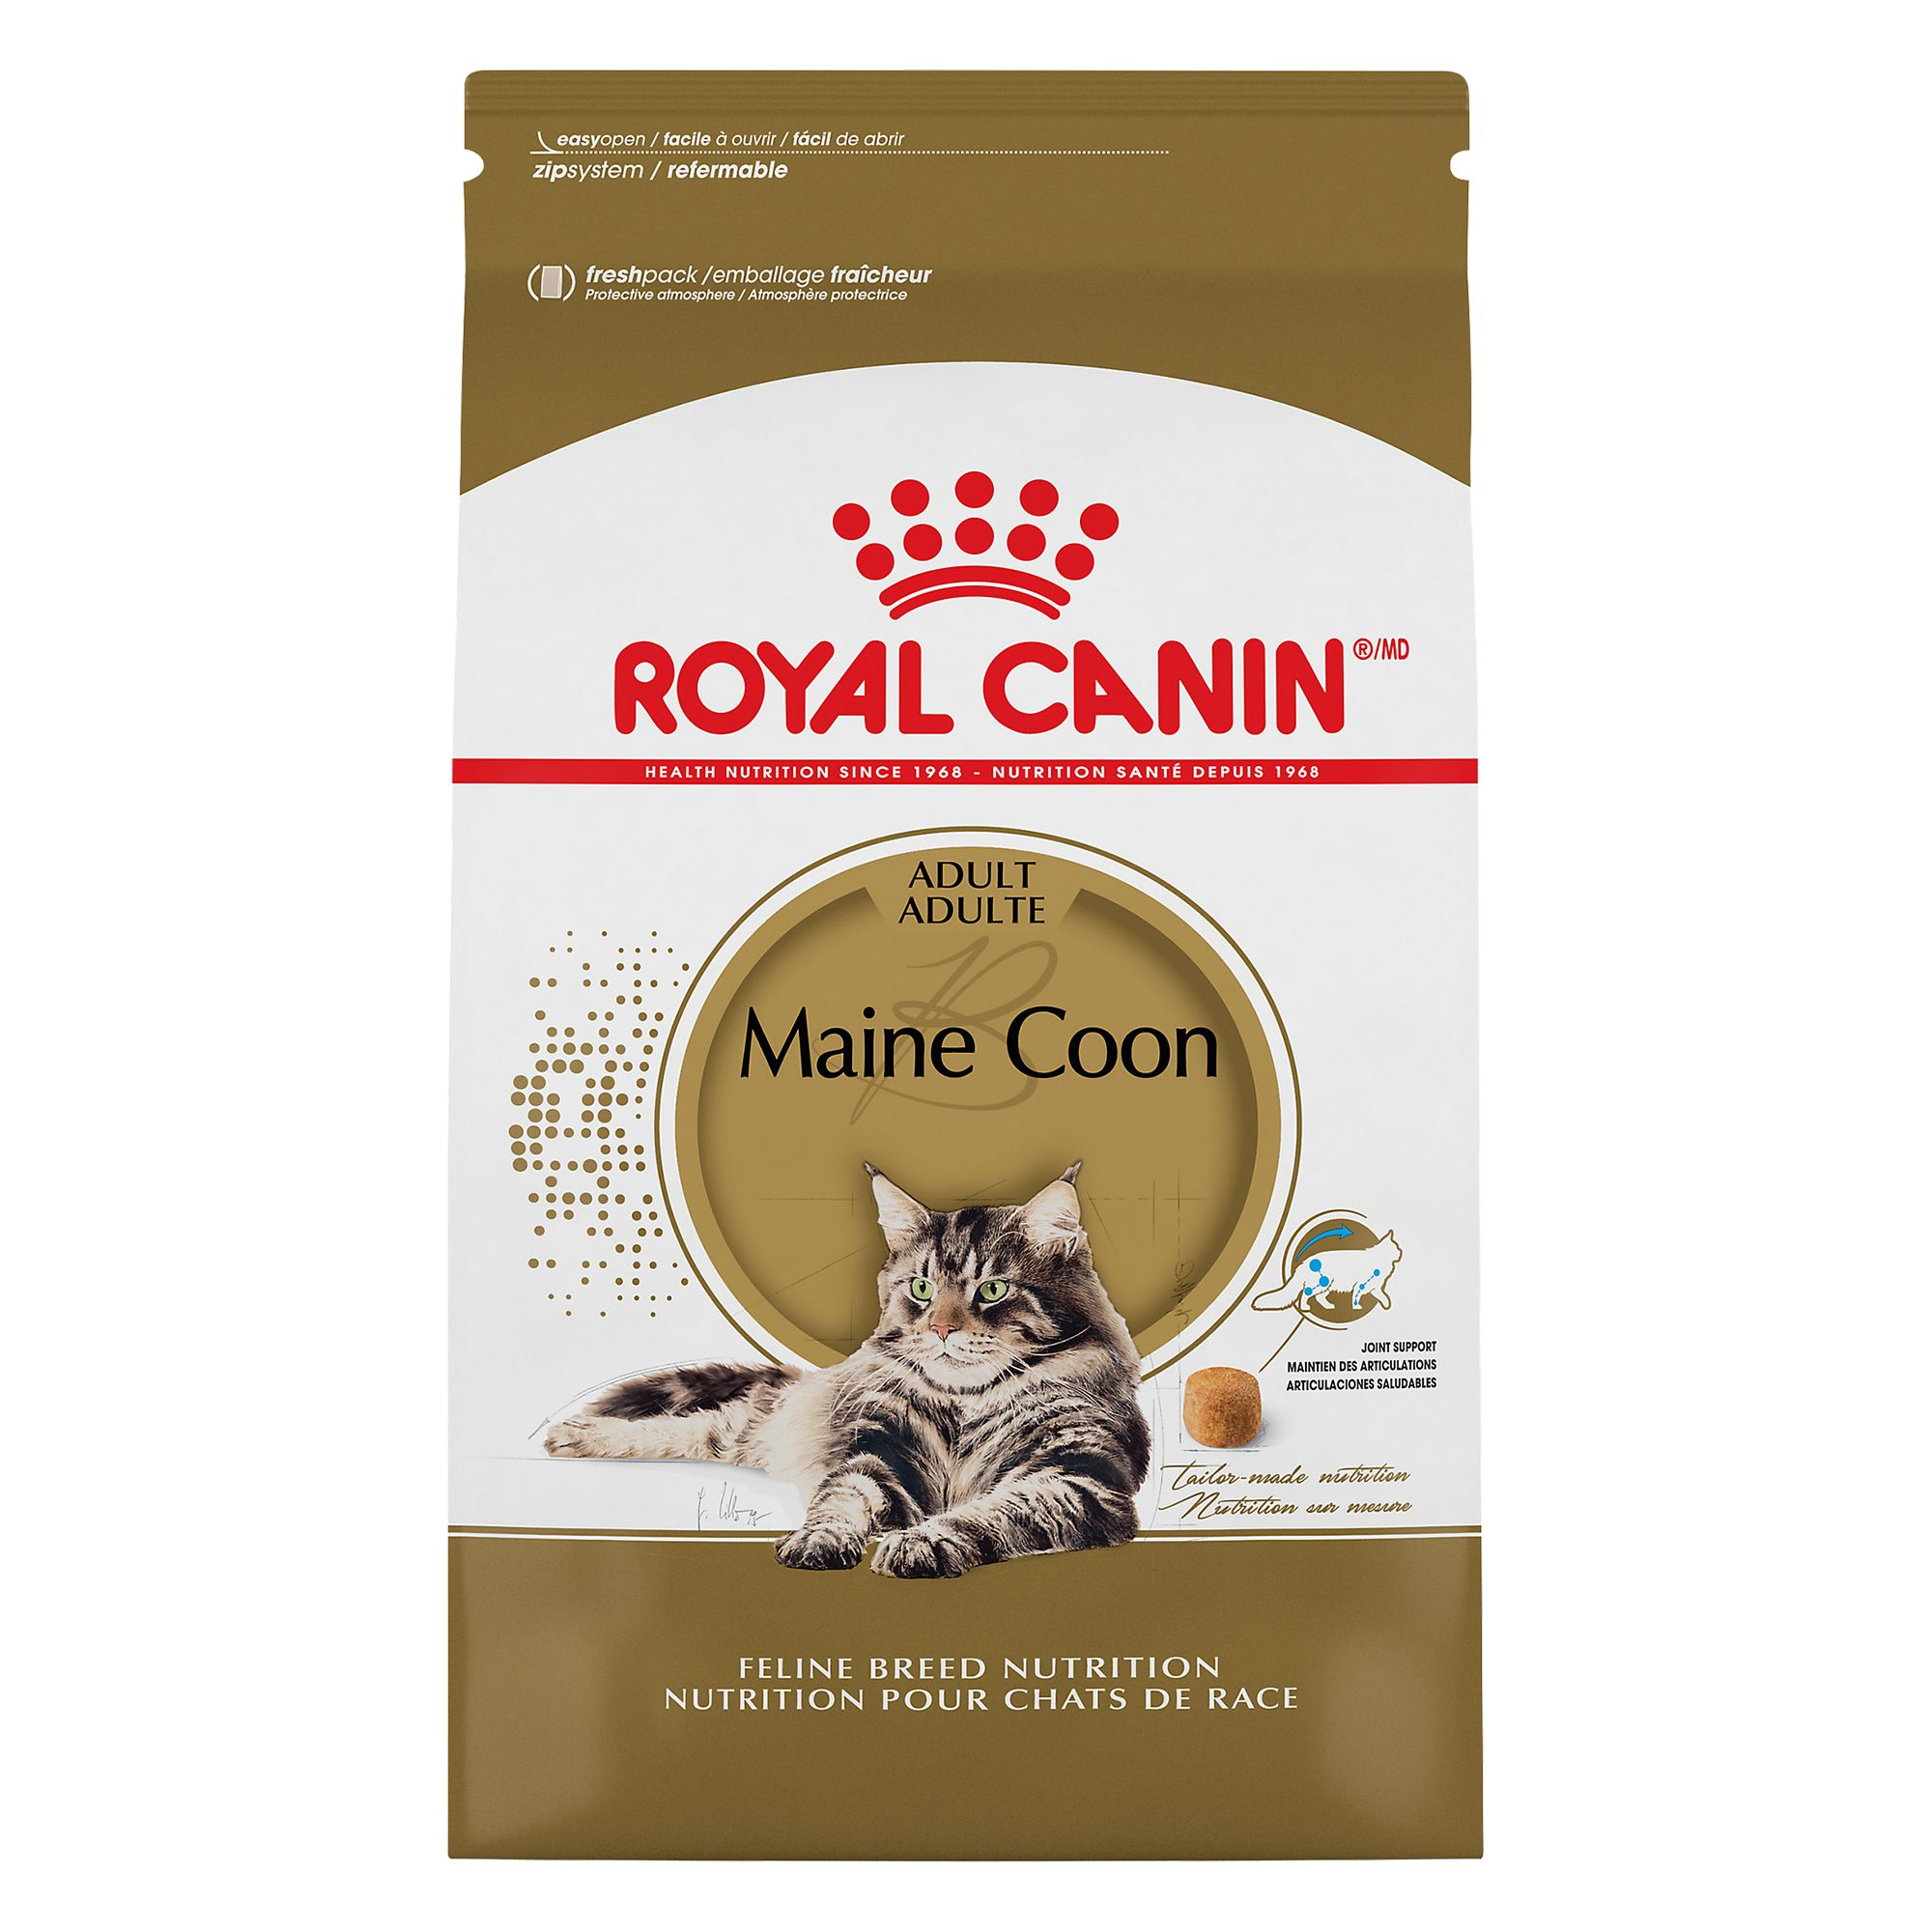 Royal Caninreg Feline Breed Nutrition Main Coon Adult Cat Food size 14 Lb